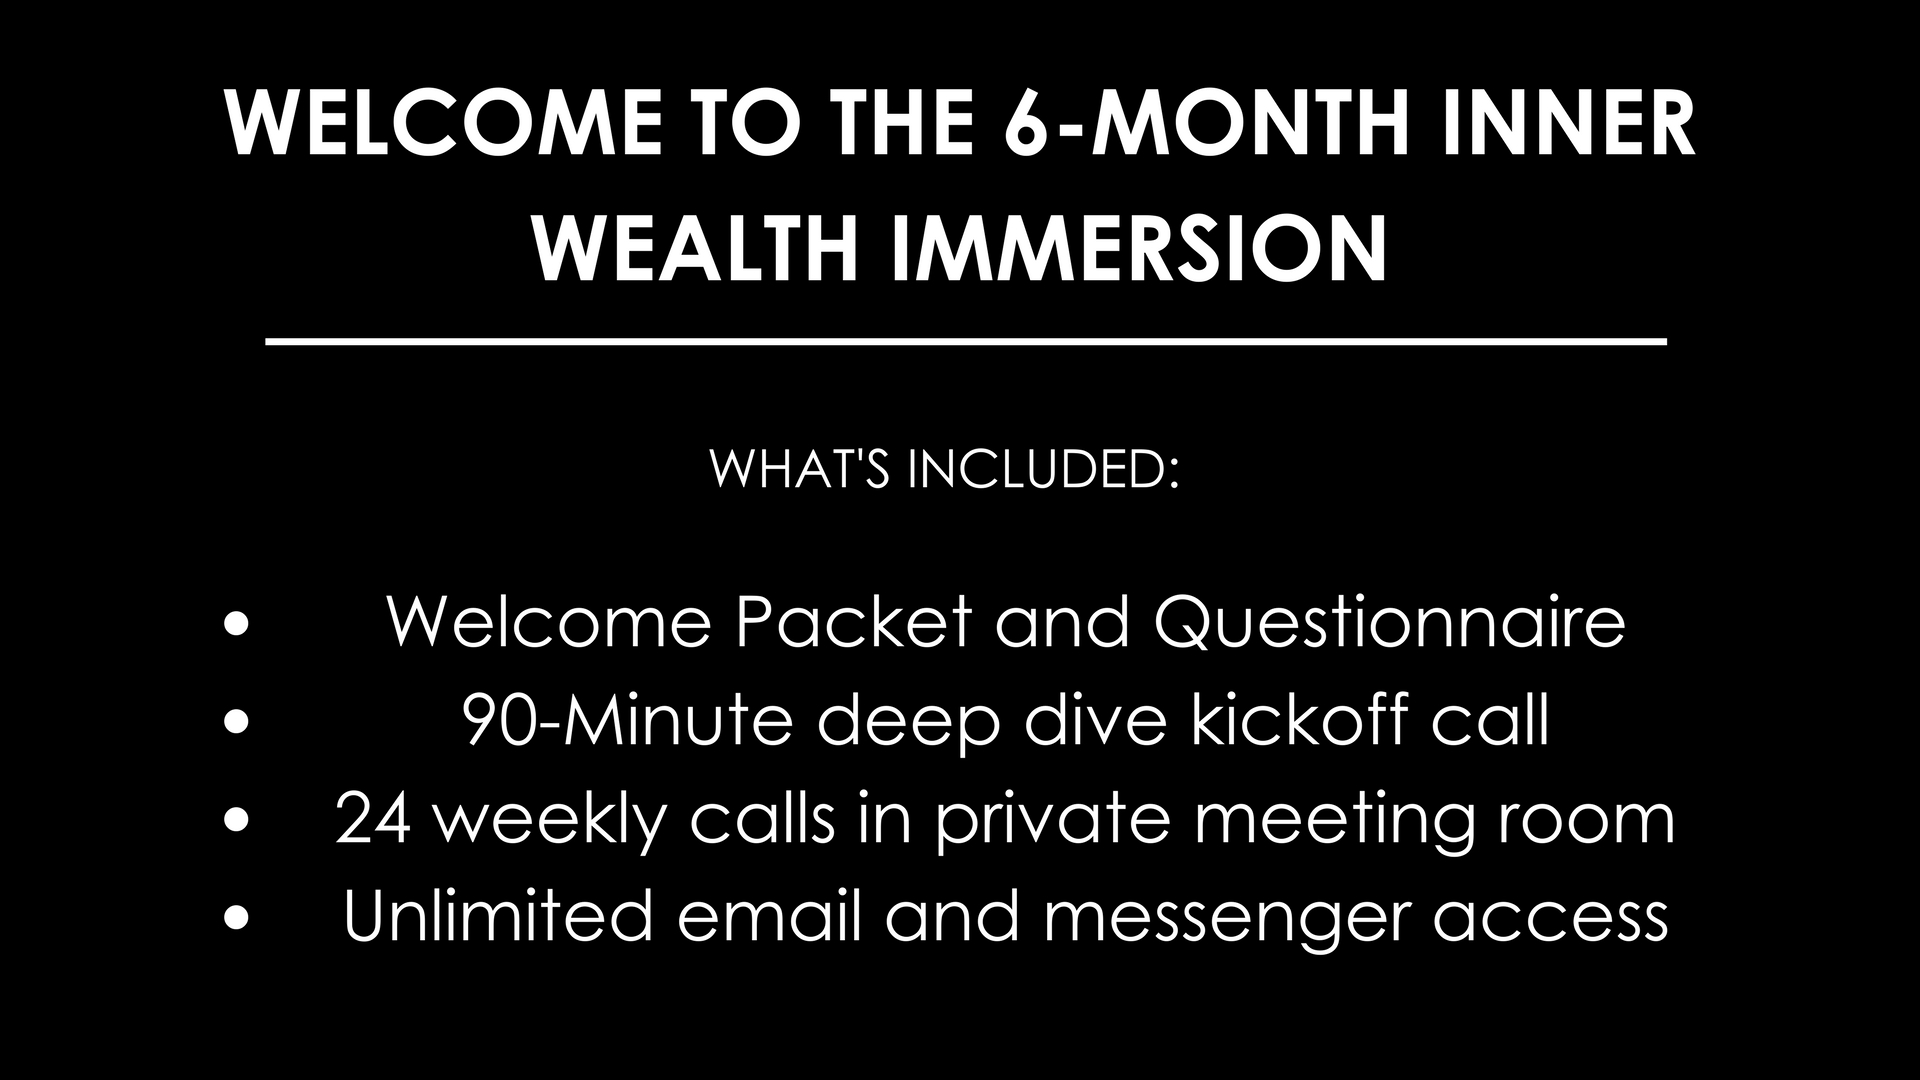 Welcome to the 90-Day Inner Wealth Activation_WHAT'S INCLUDED_Welcome Packet and Questionnaire90-Minute deep dive kickoff call12 weekly calls in private meeting roomUnlimited email and messenger access (1).jpg